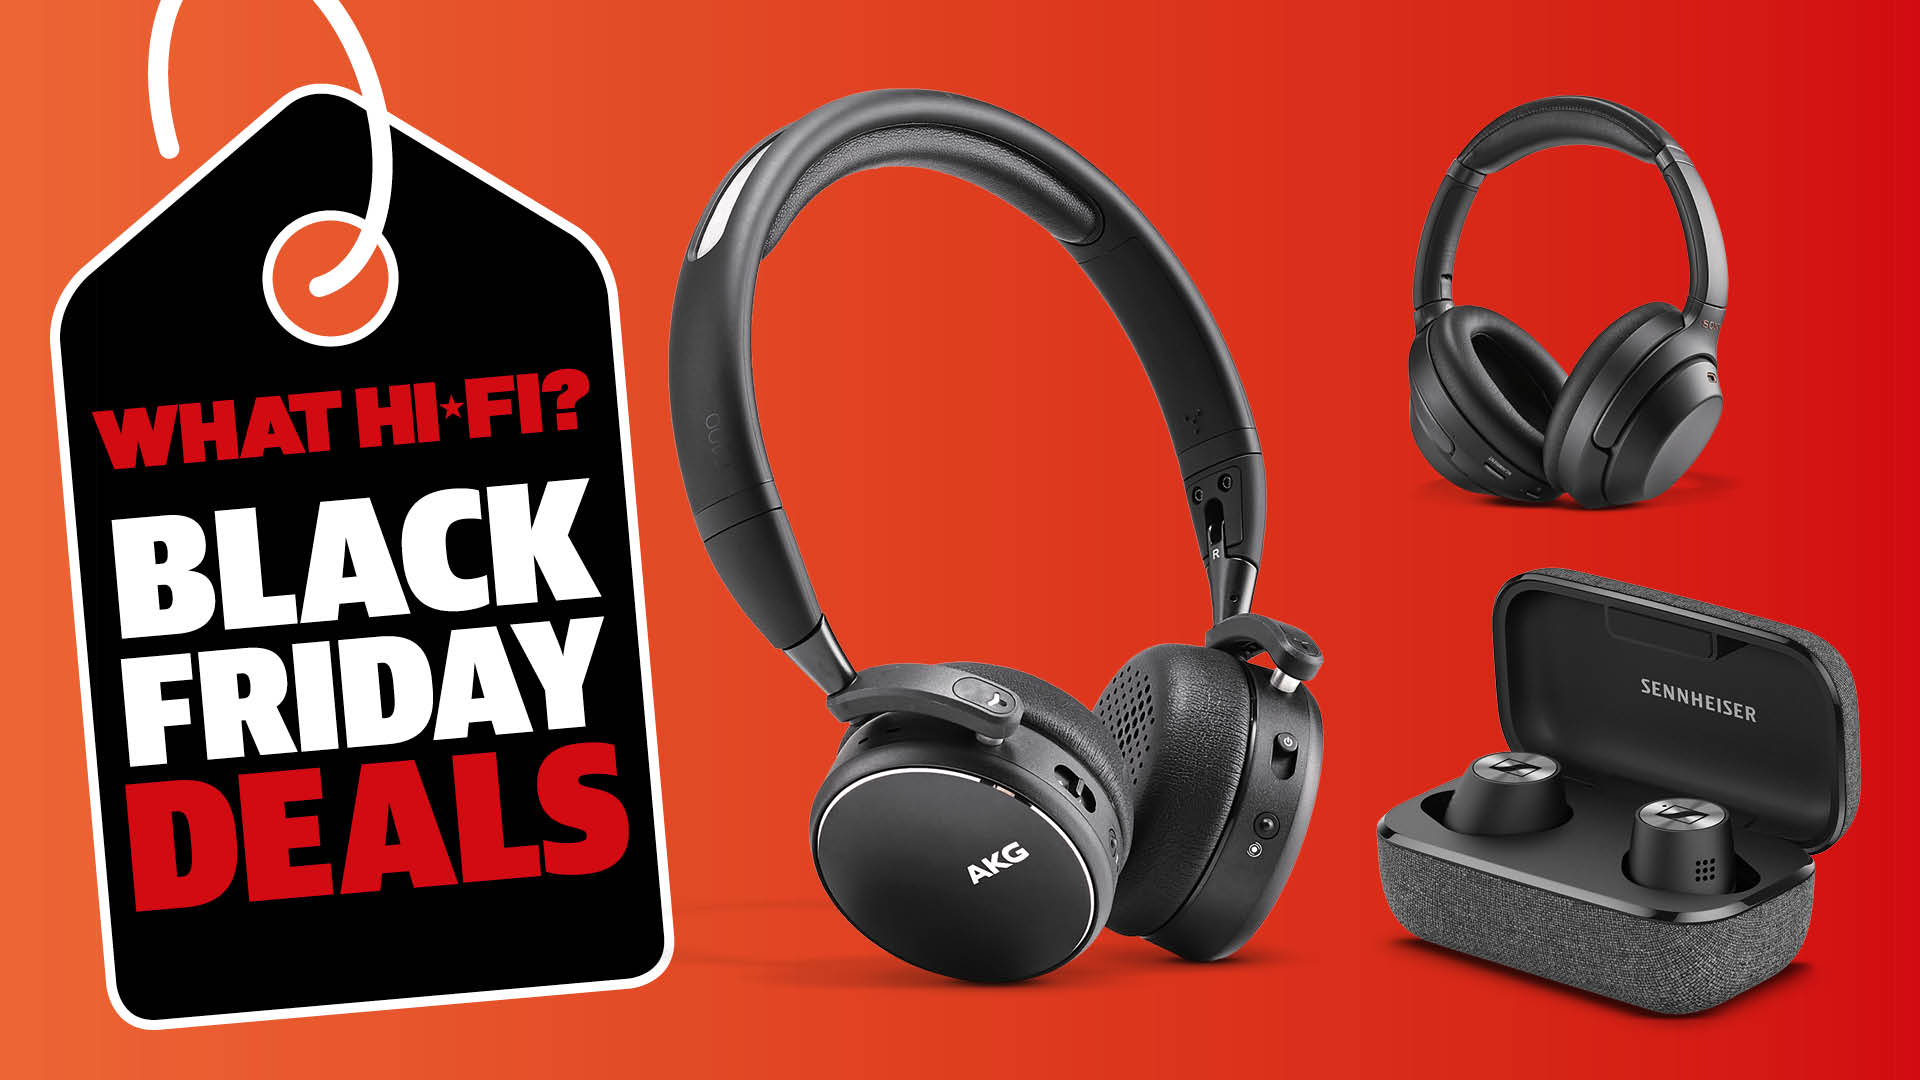 Best Black Friday Headphones Deals 2020 Bose Beats Sony And More What Hi Fi